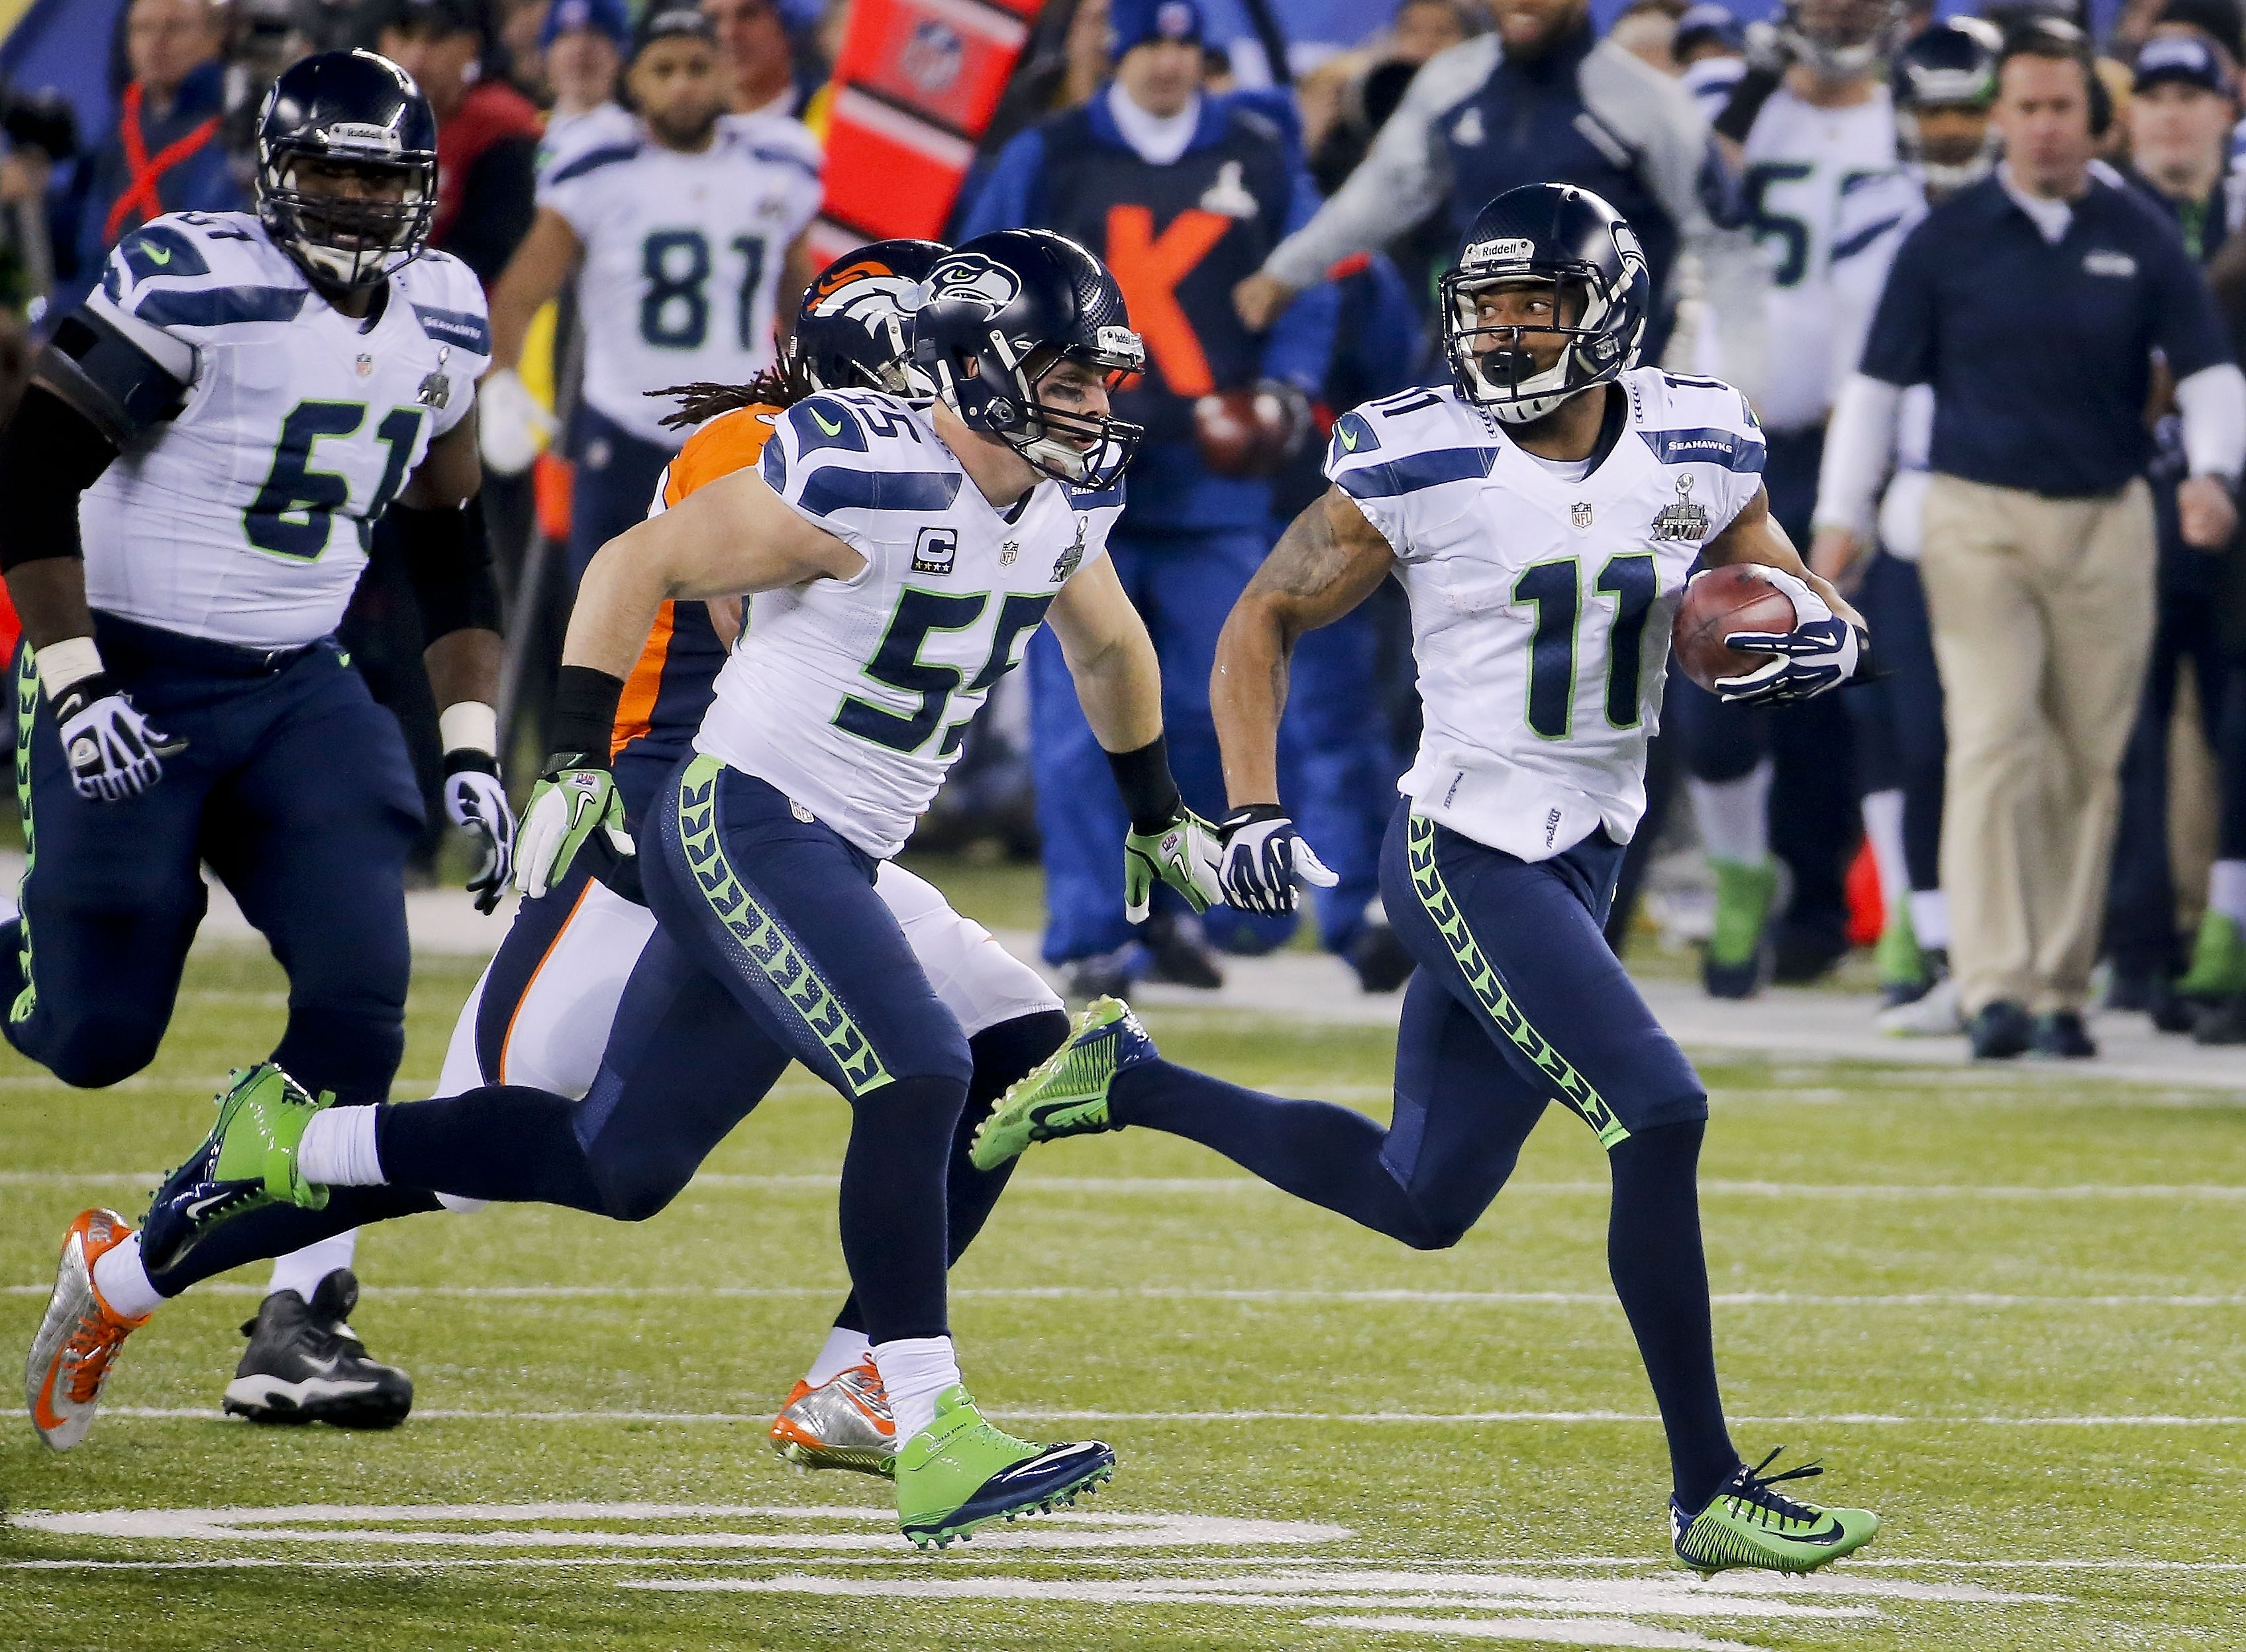 Seattle Seahawks wide receiver Percy Harvin (11) returns a kickoff for a touchdown to open the second half of the Super Bowl against the Broncos, building on Seattle's 22-0 lead en route to the 43-8 triumph at MetLife Stadium in East Rutherford, N.J. (AP Photo/Matt York)